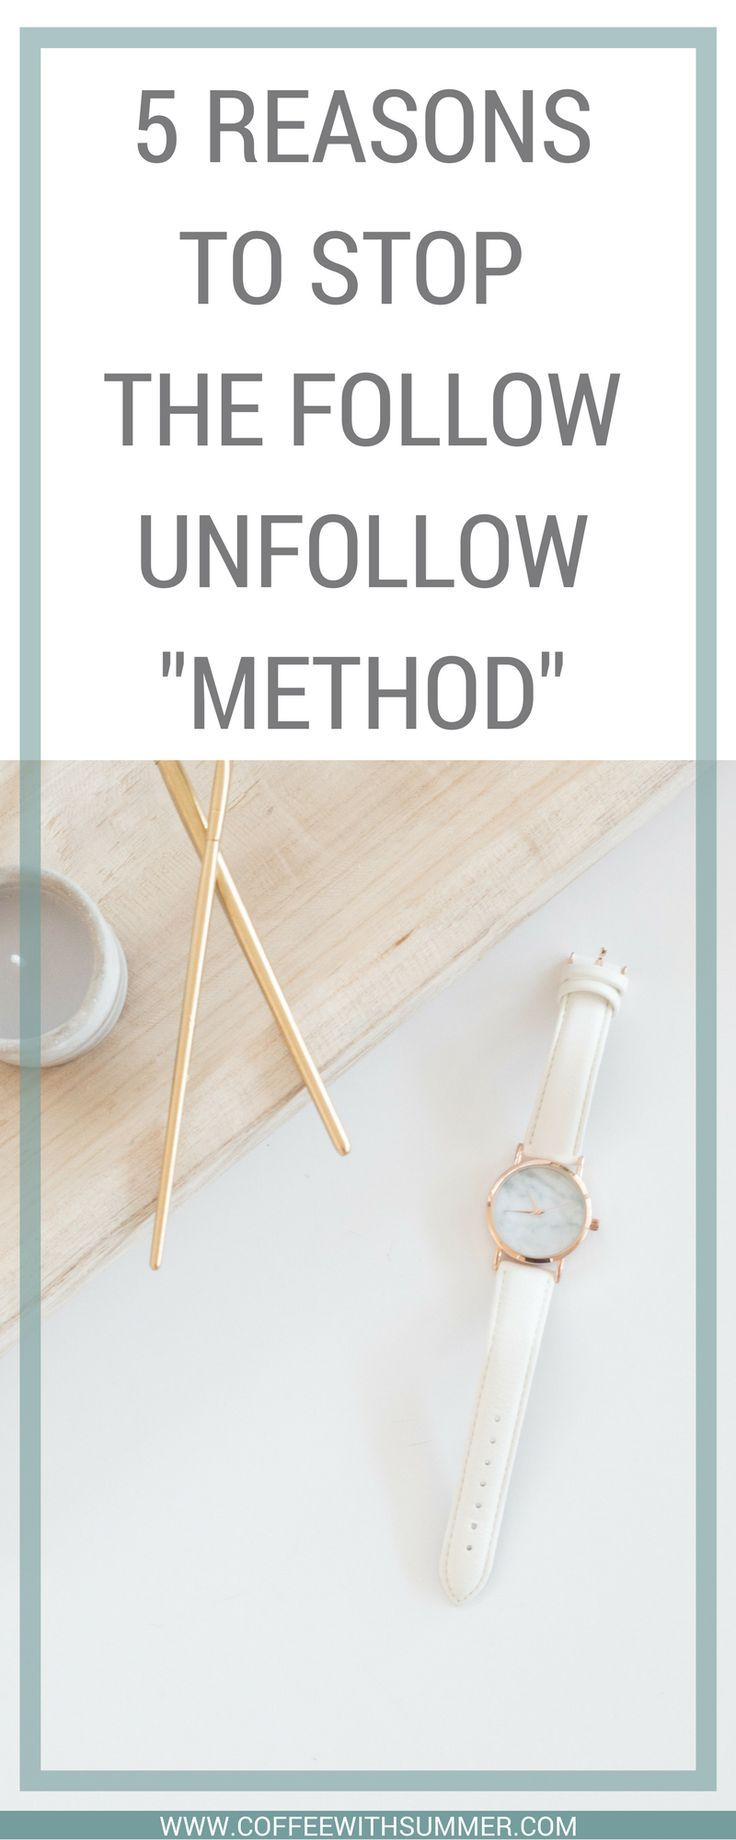 5 Key Reasons To Stop Follow/Unfollow (With images